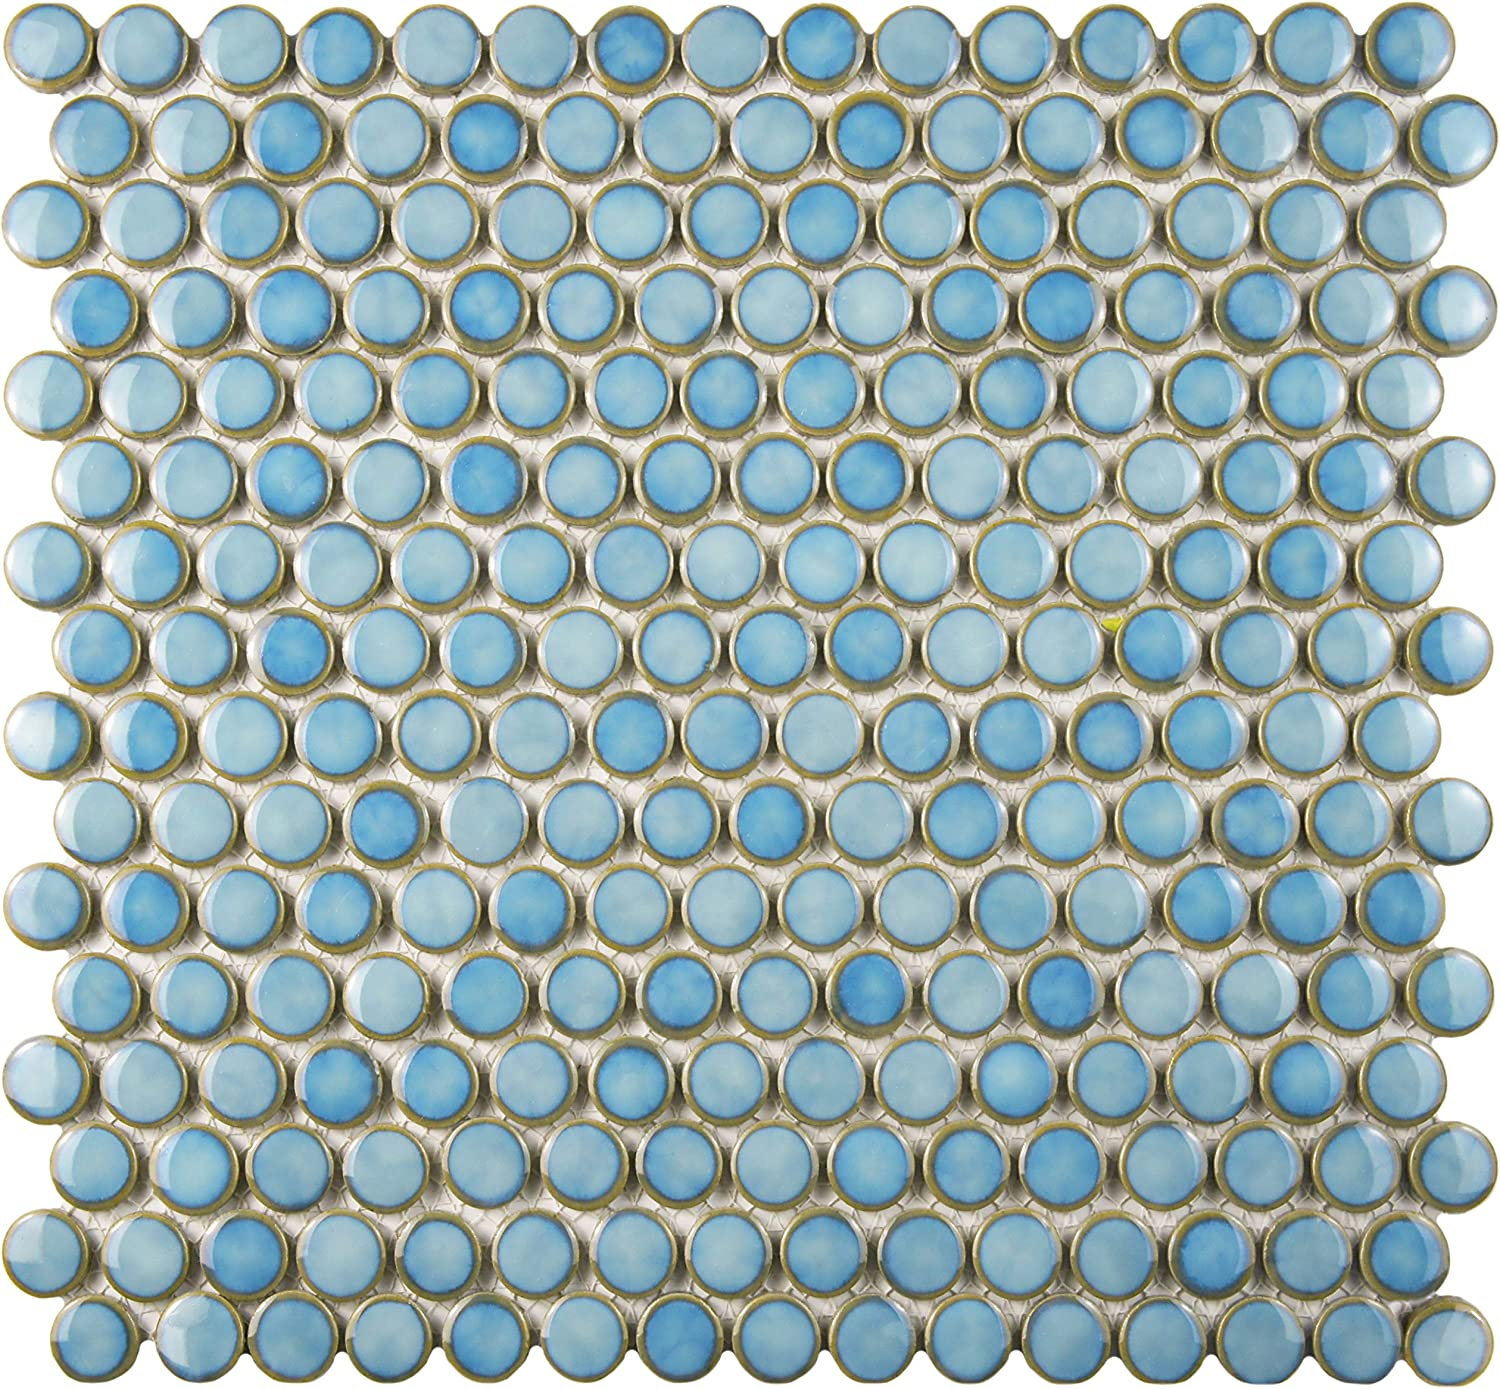 """SomerTile FKOMPR4 Penny Porcelain Mosaic Floor and Wall, 4"""" x 4.4"""",  Marine Blue Tile, 4x4.4 Inch, 4 Count"""